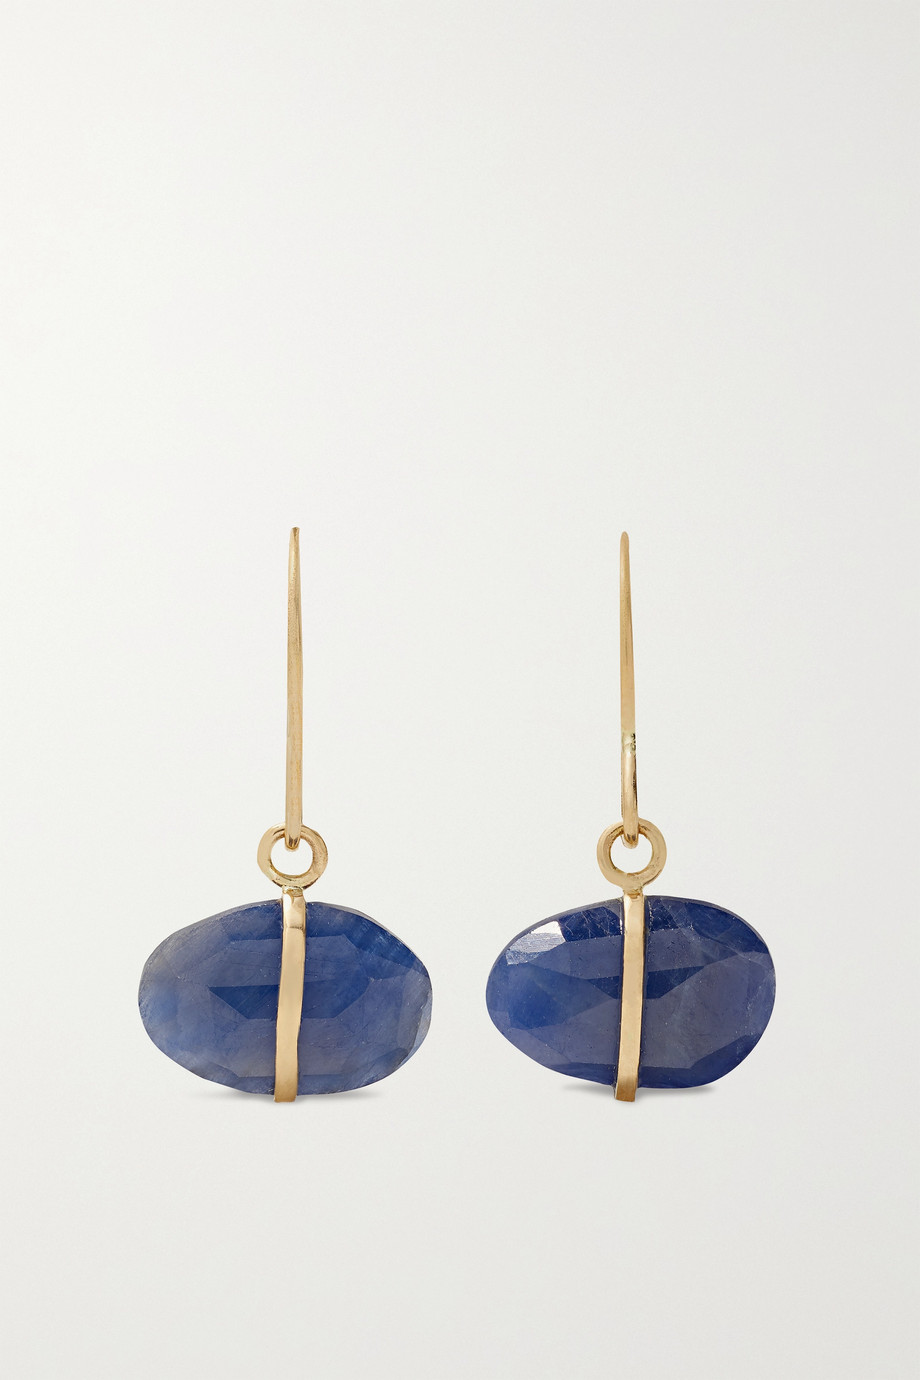 MELISSA JOY MANNING 14-karat recycled gold sapphire earrings